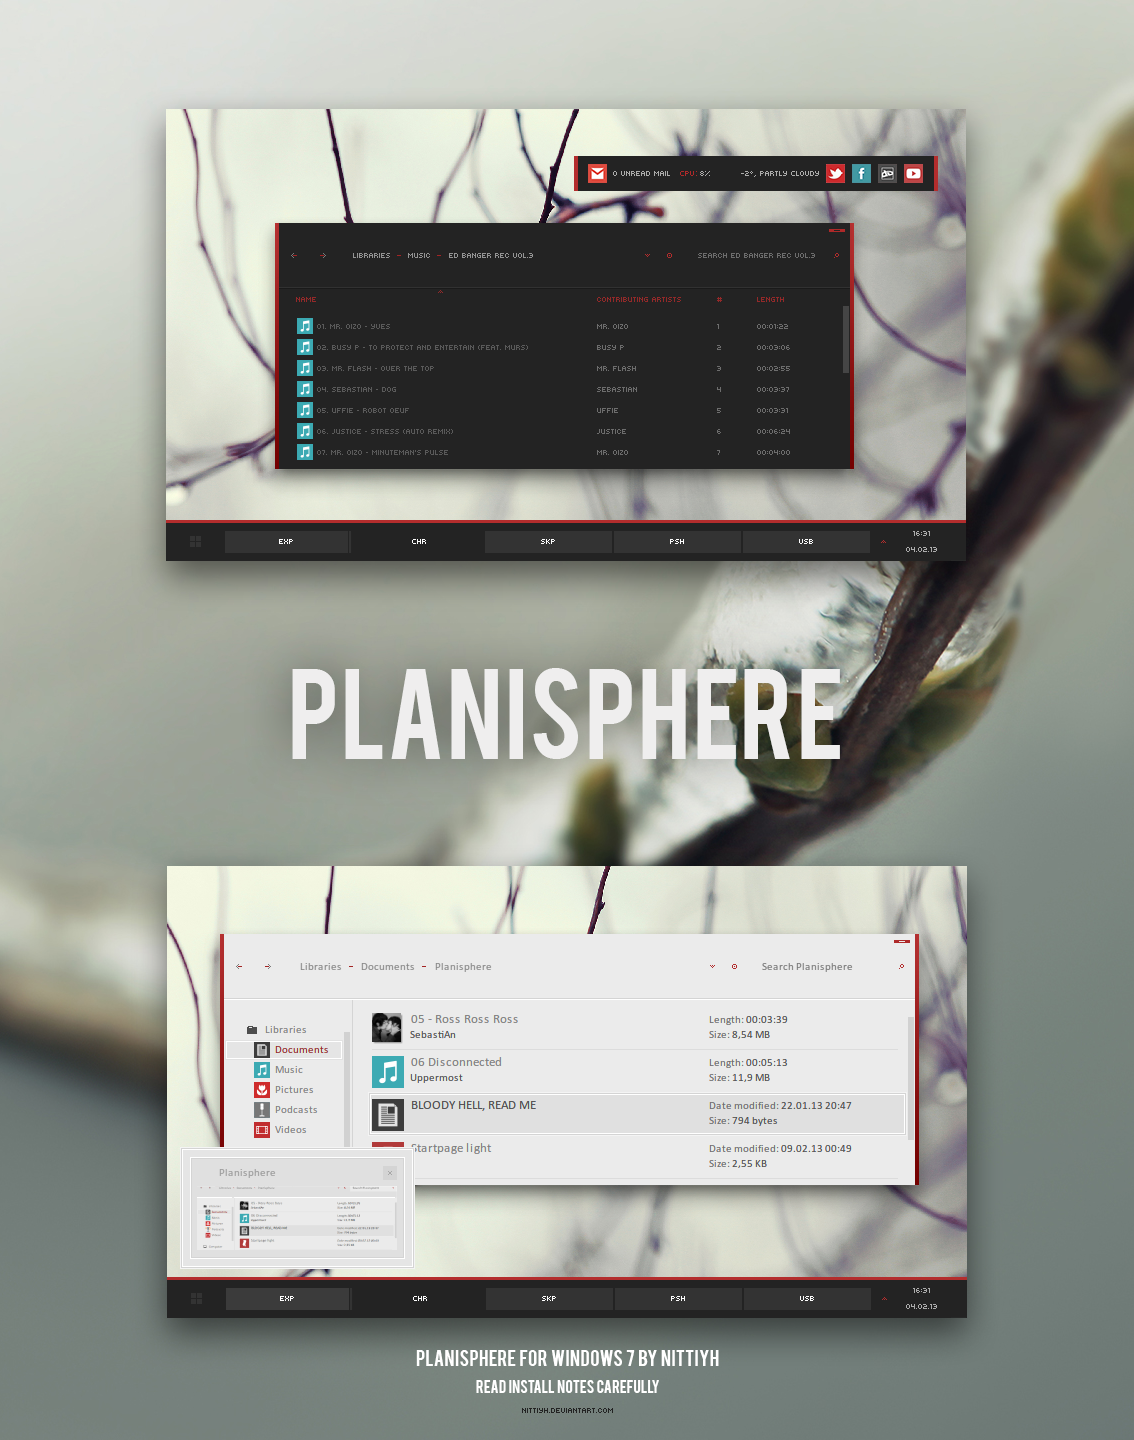 Planisphere Theme for Win7